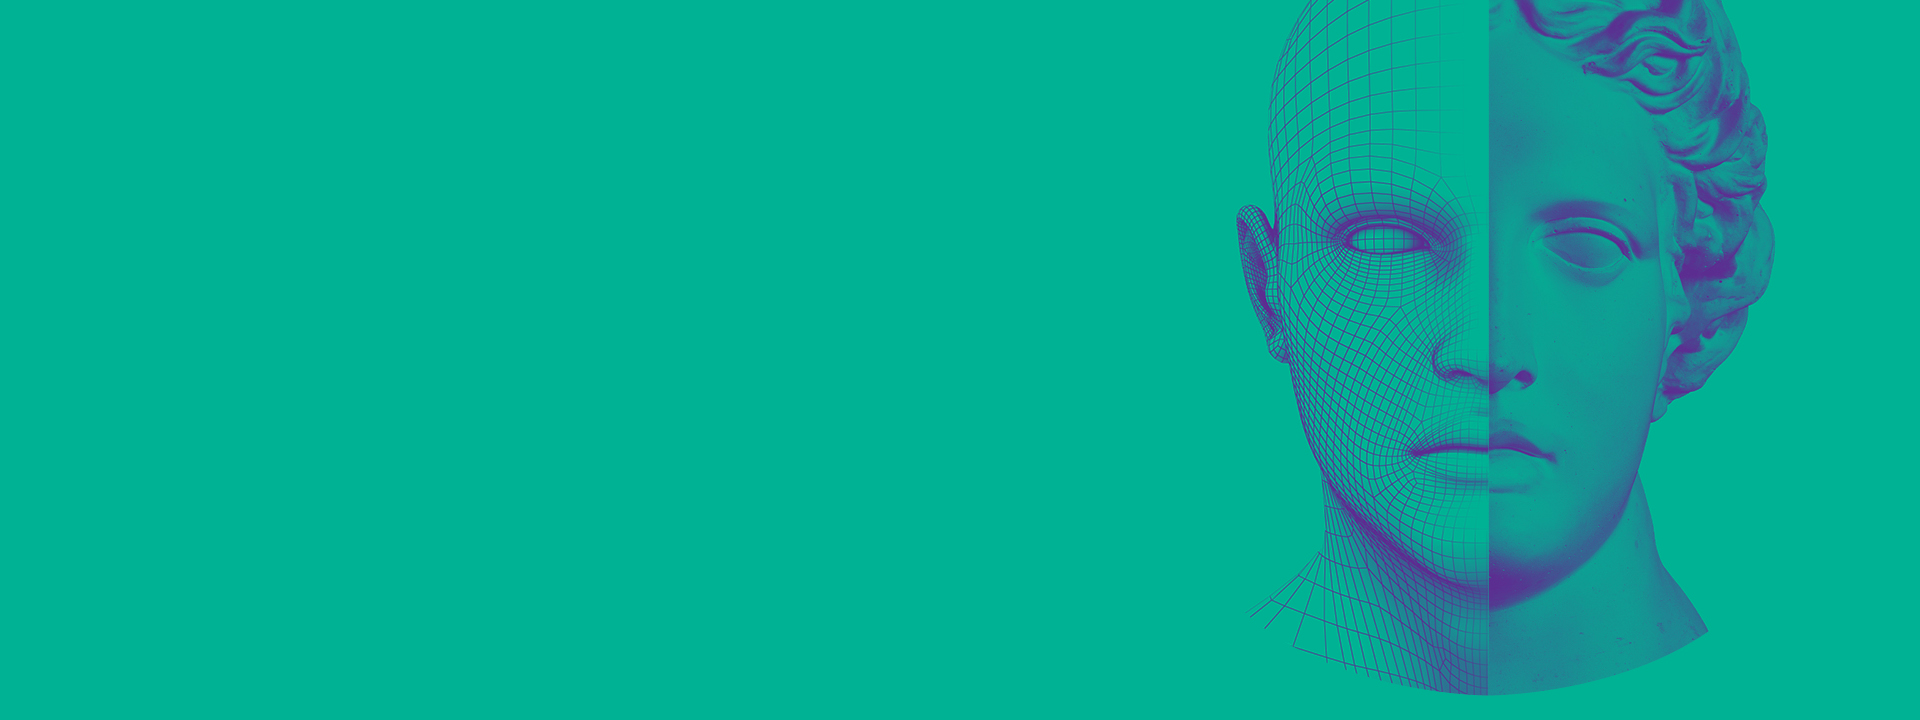 Portrait on green background, header for New England Machine Learning Day event page